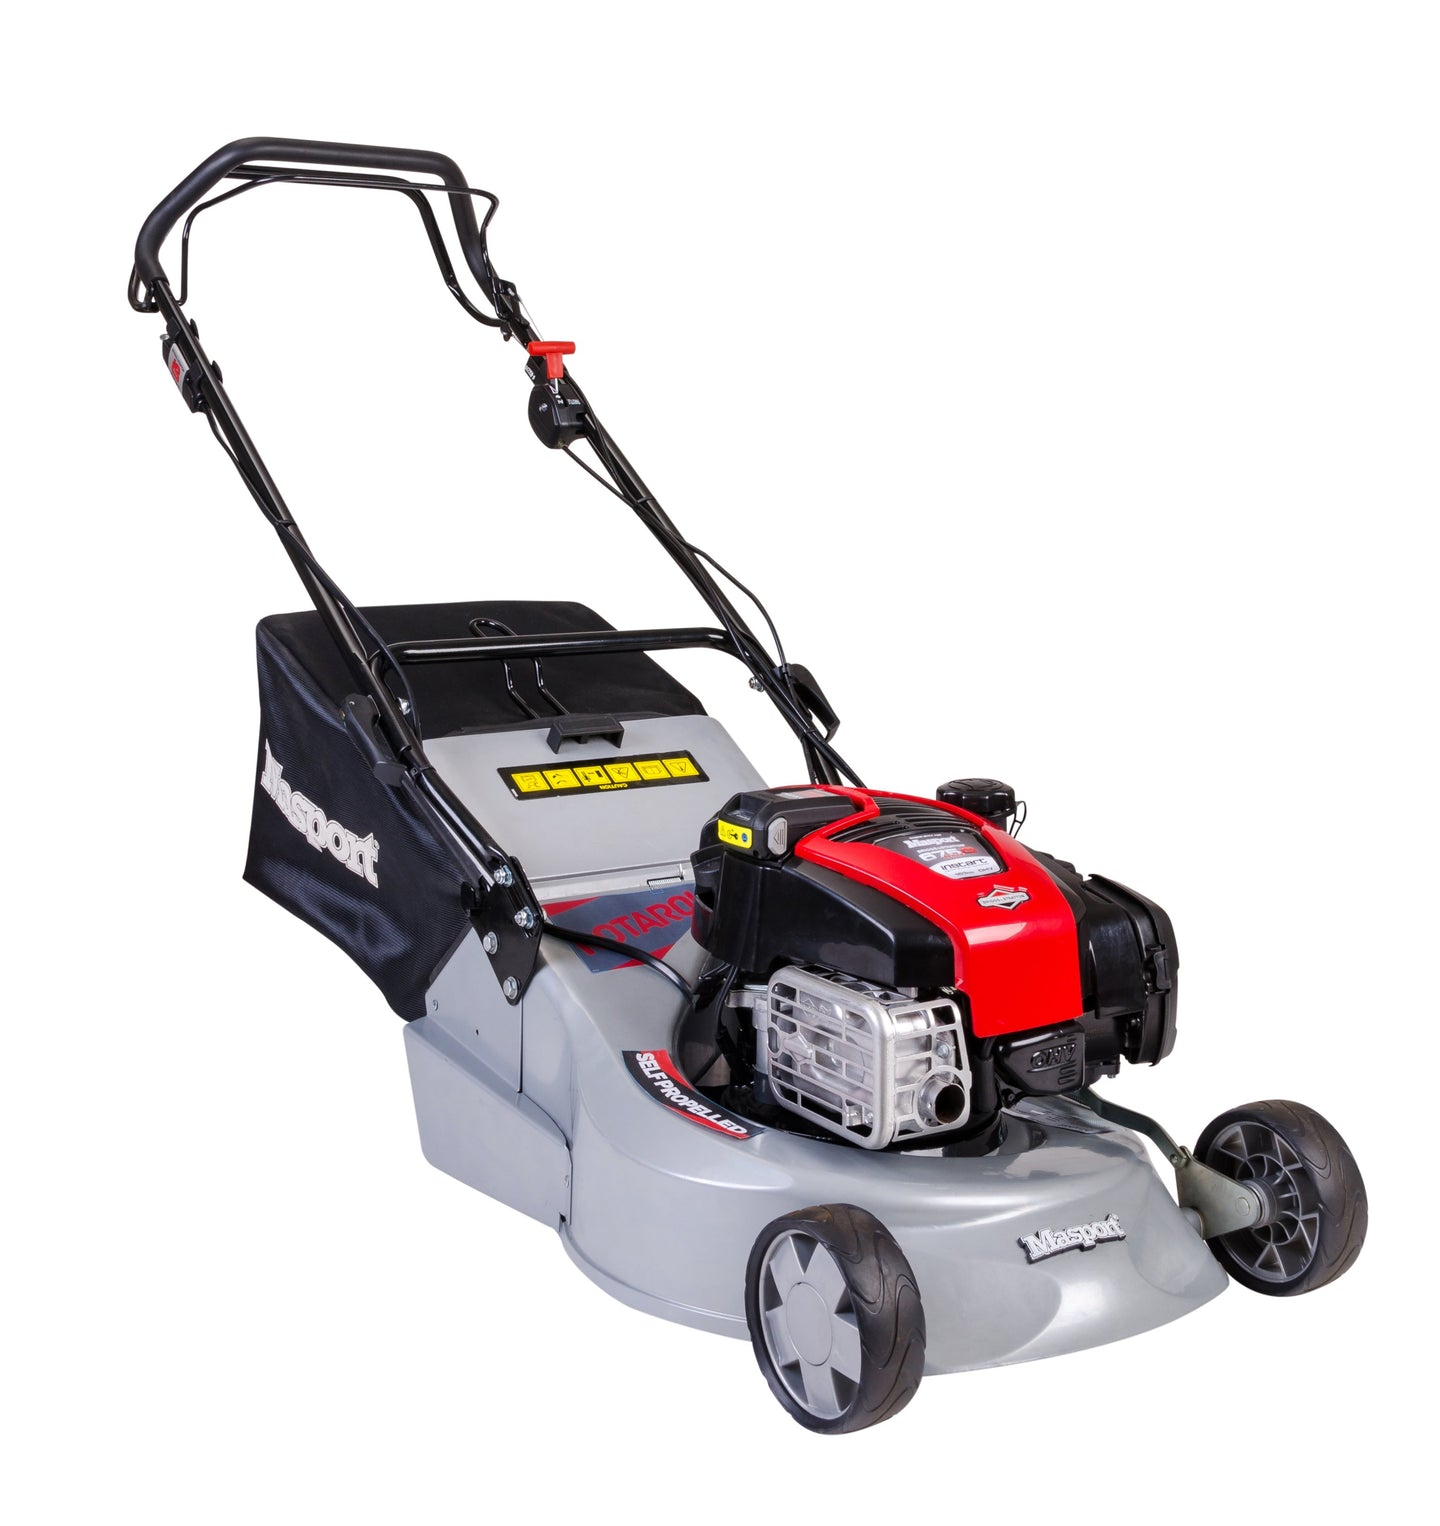 RRSP18 IN-START rotarola mower